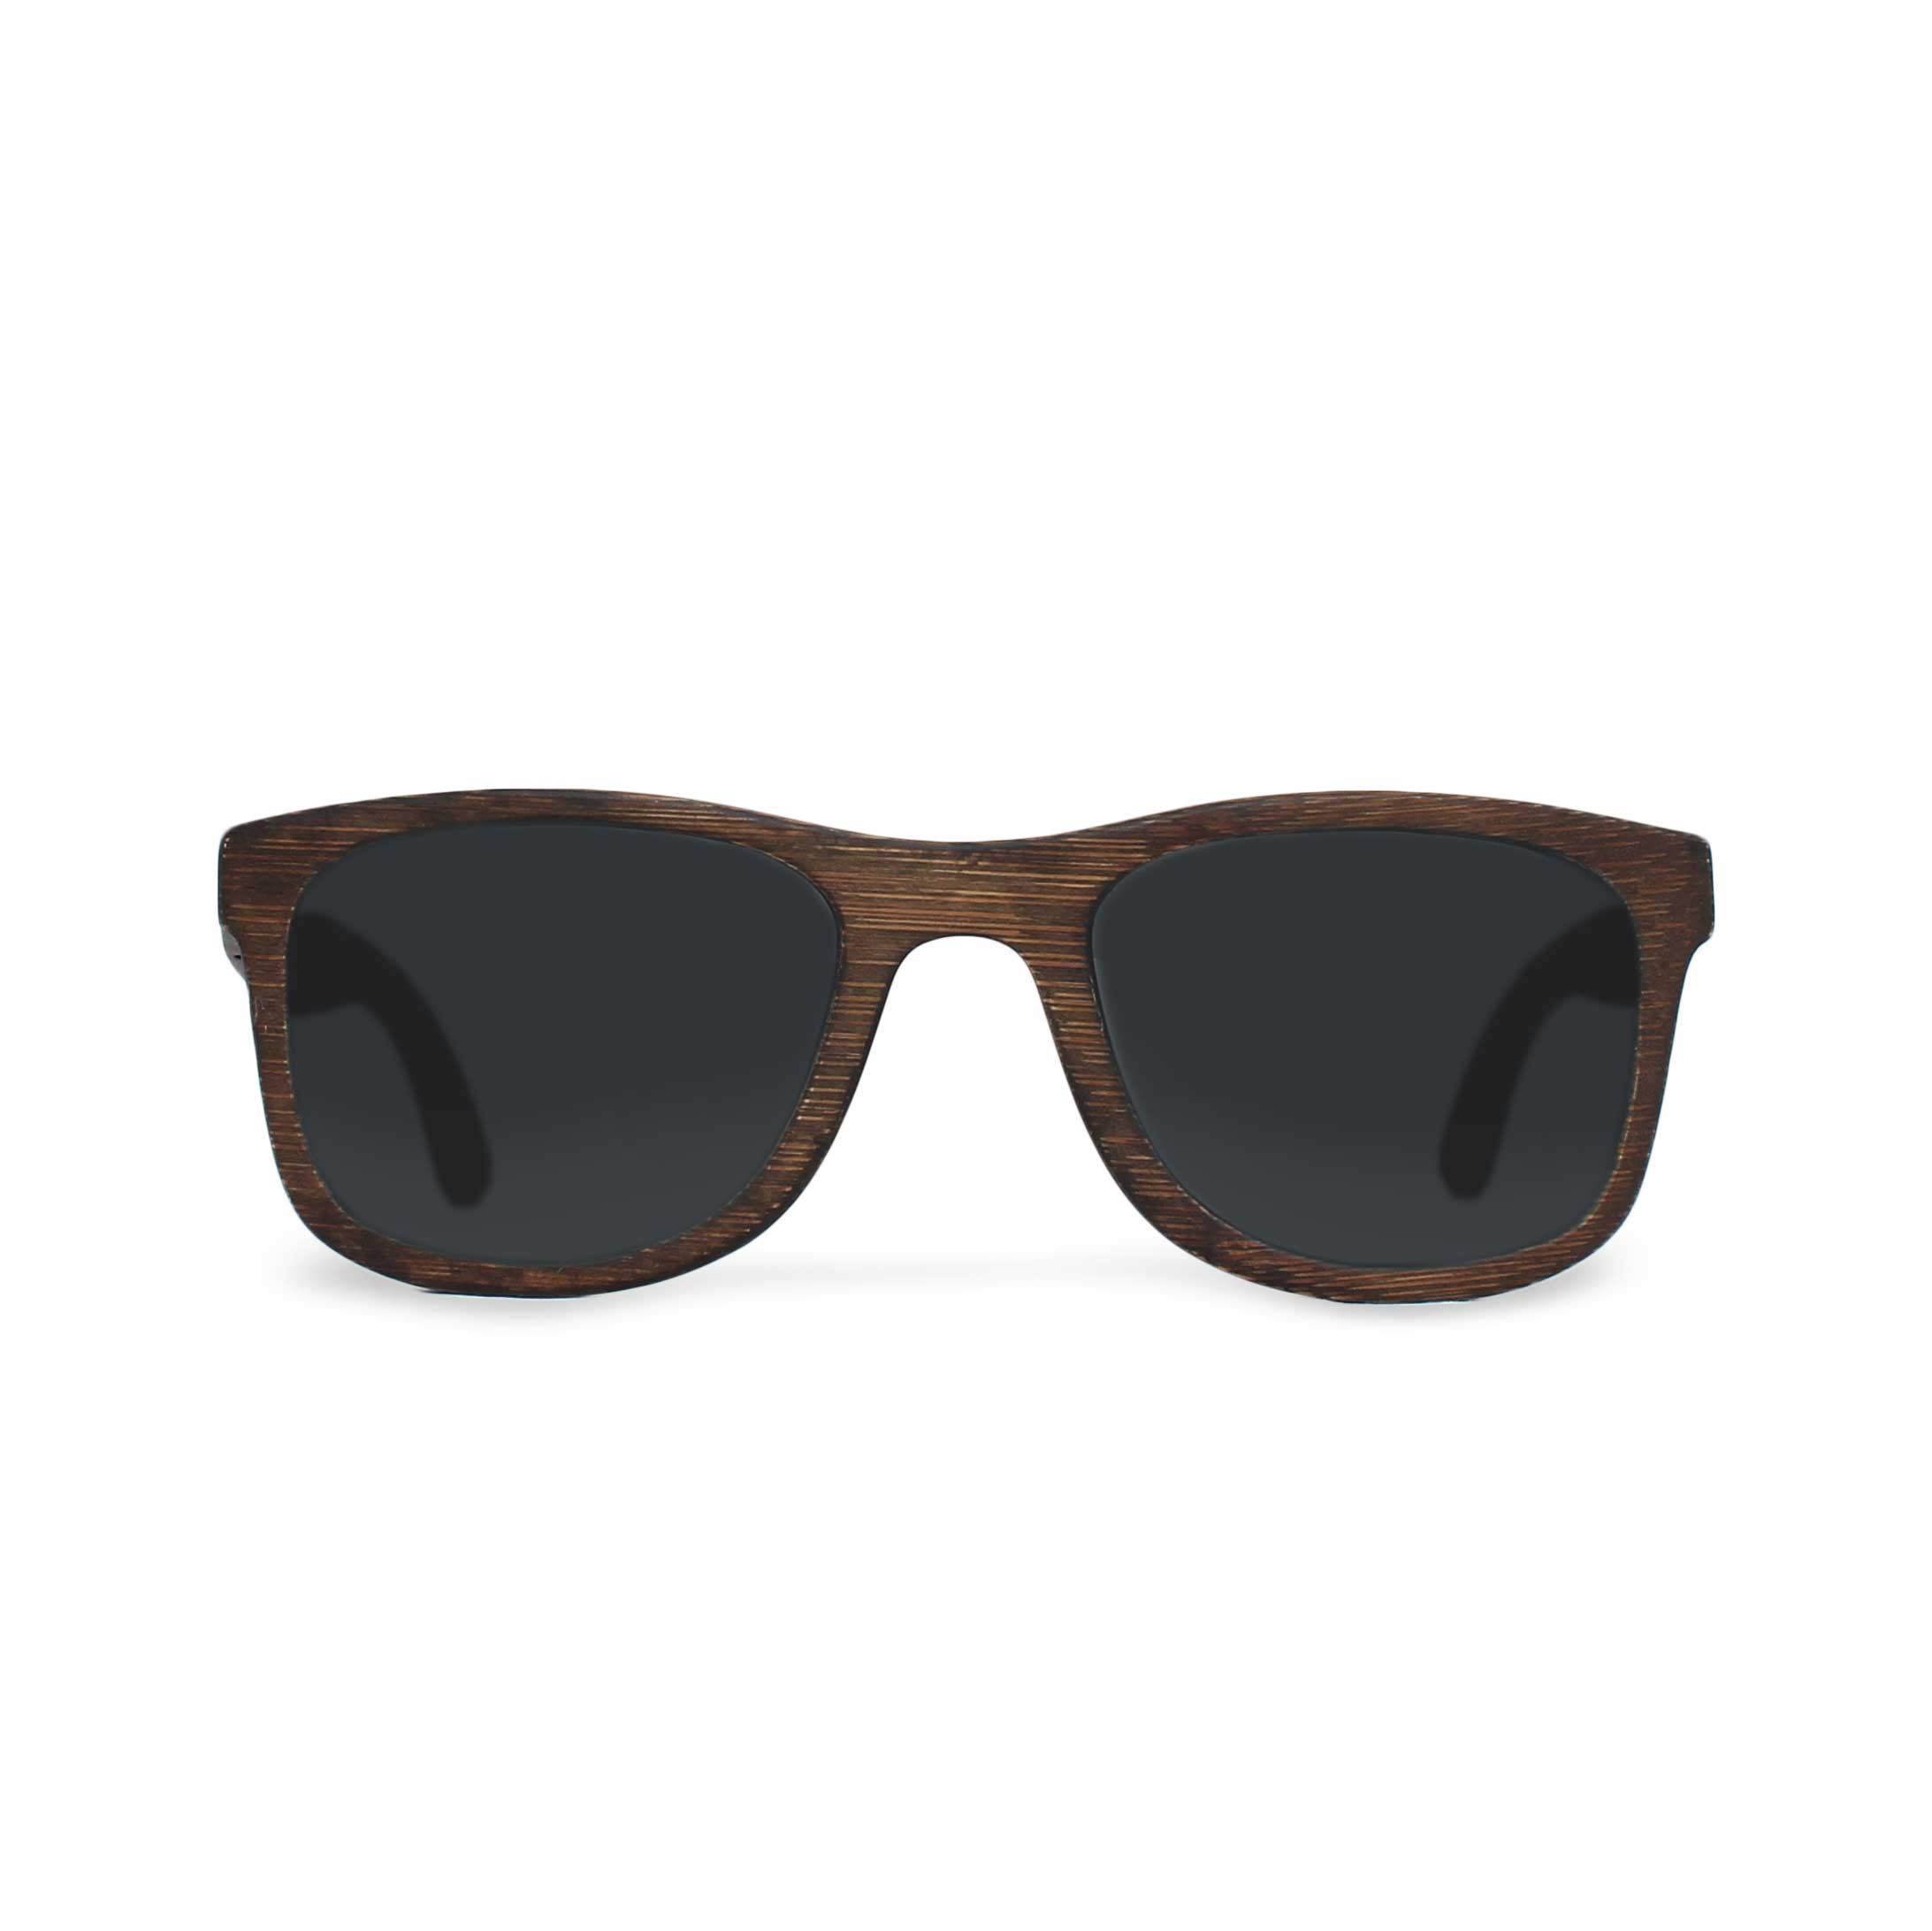 Sunglasses wayfarer murielo time for wood